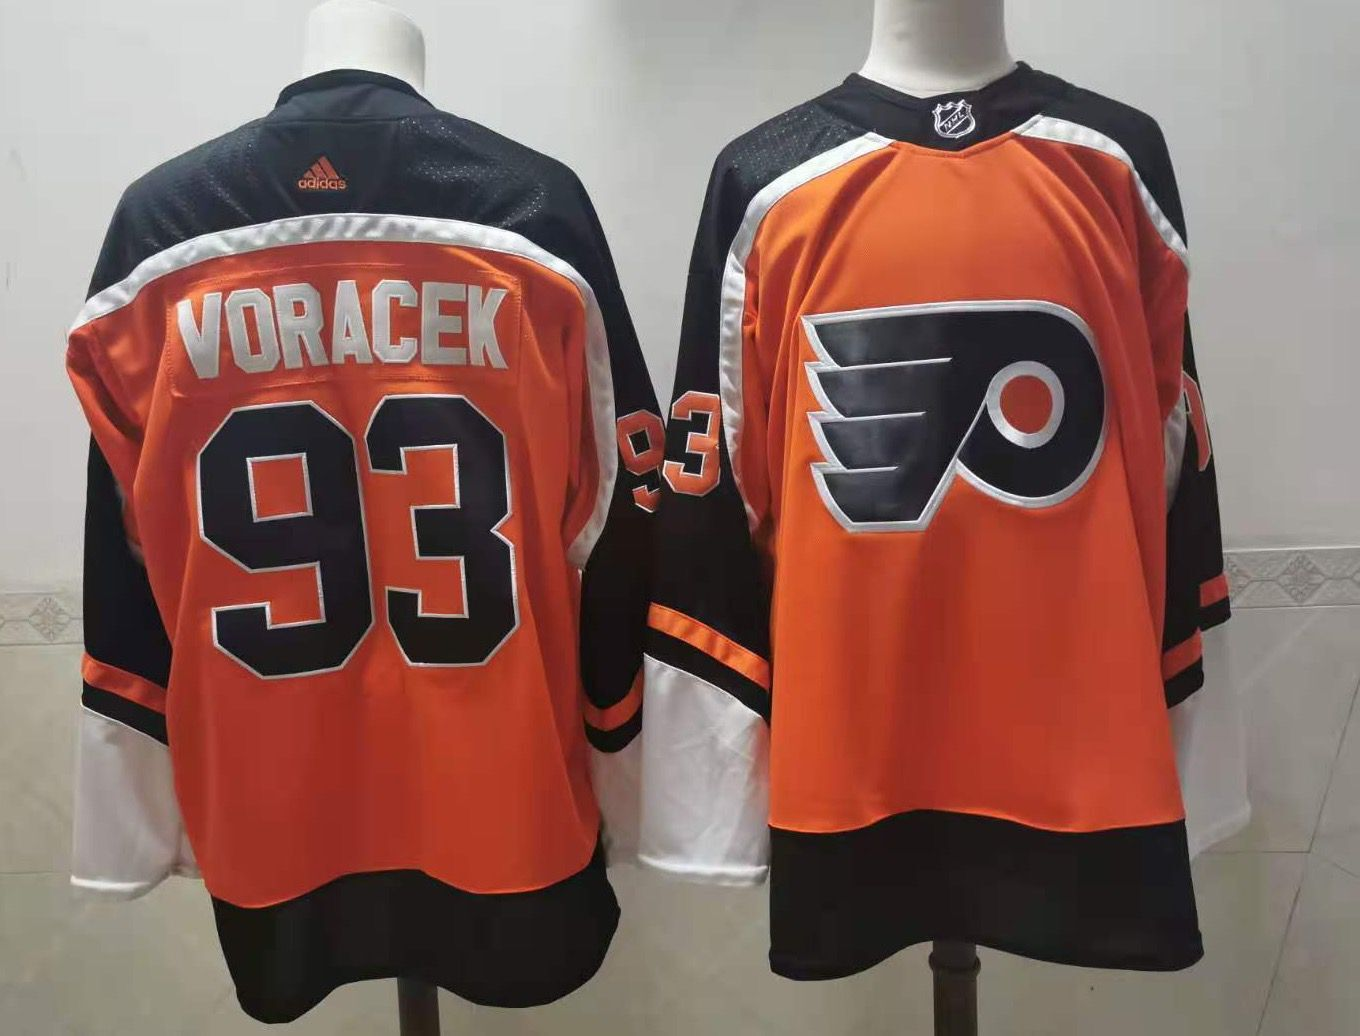 Men's Philadelphia Flyers #93 Jakub Voracek Orange Adidas 2020-21 Stitched NHL Jersey